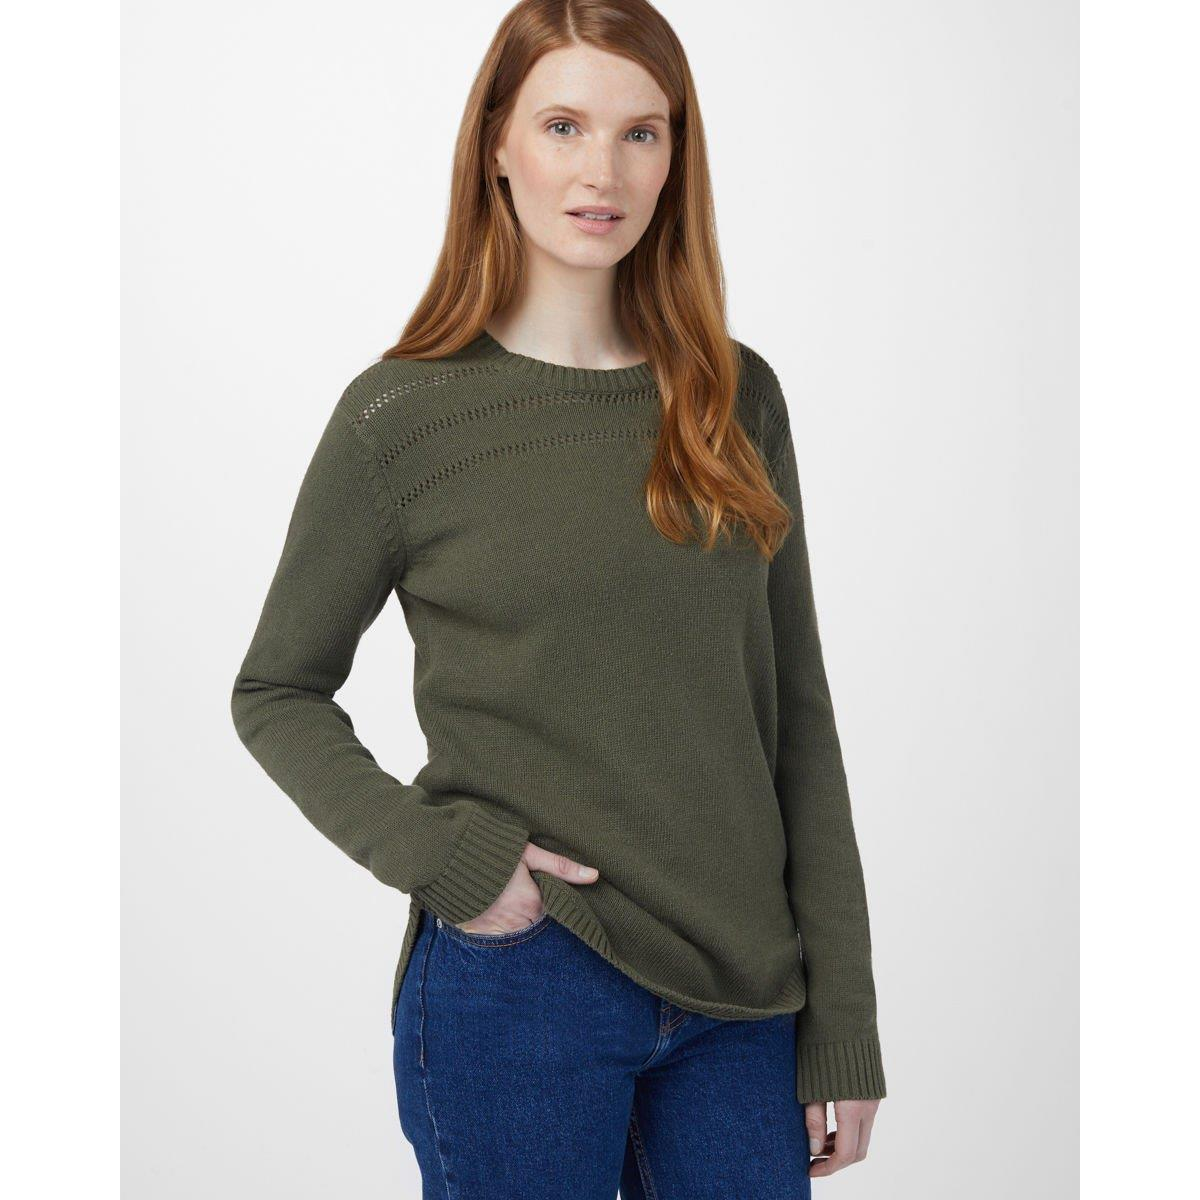 tcw1537-0012 Ten Tree Forever After Sweater womens shirt olive night green front view